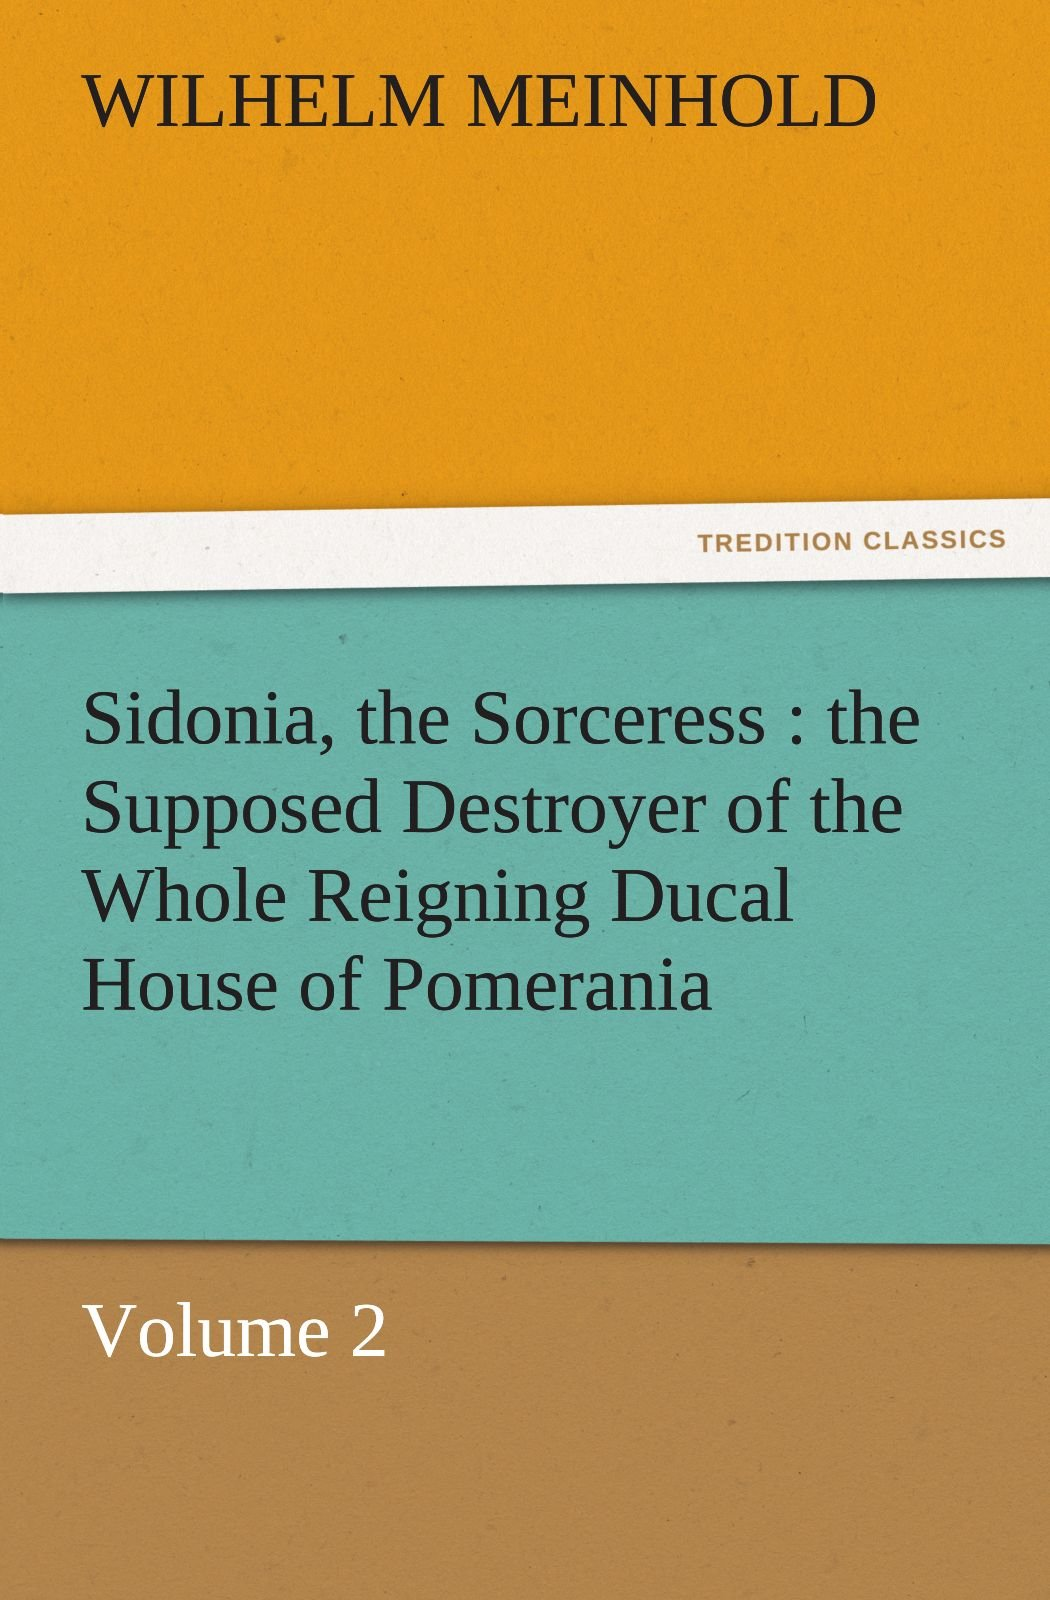 Download Sidonia, the Sorceress : the Supposed Destroyer of the Whole Reigning Ducal House of Pomerania — Volume 2 (TREDITION CLASSICS) PDF